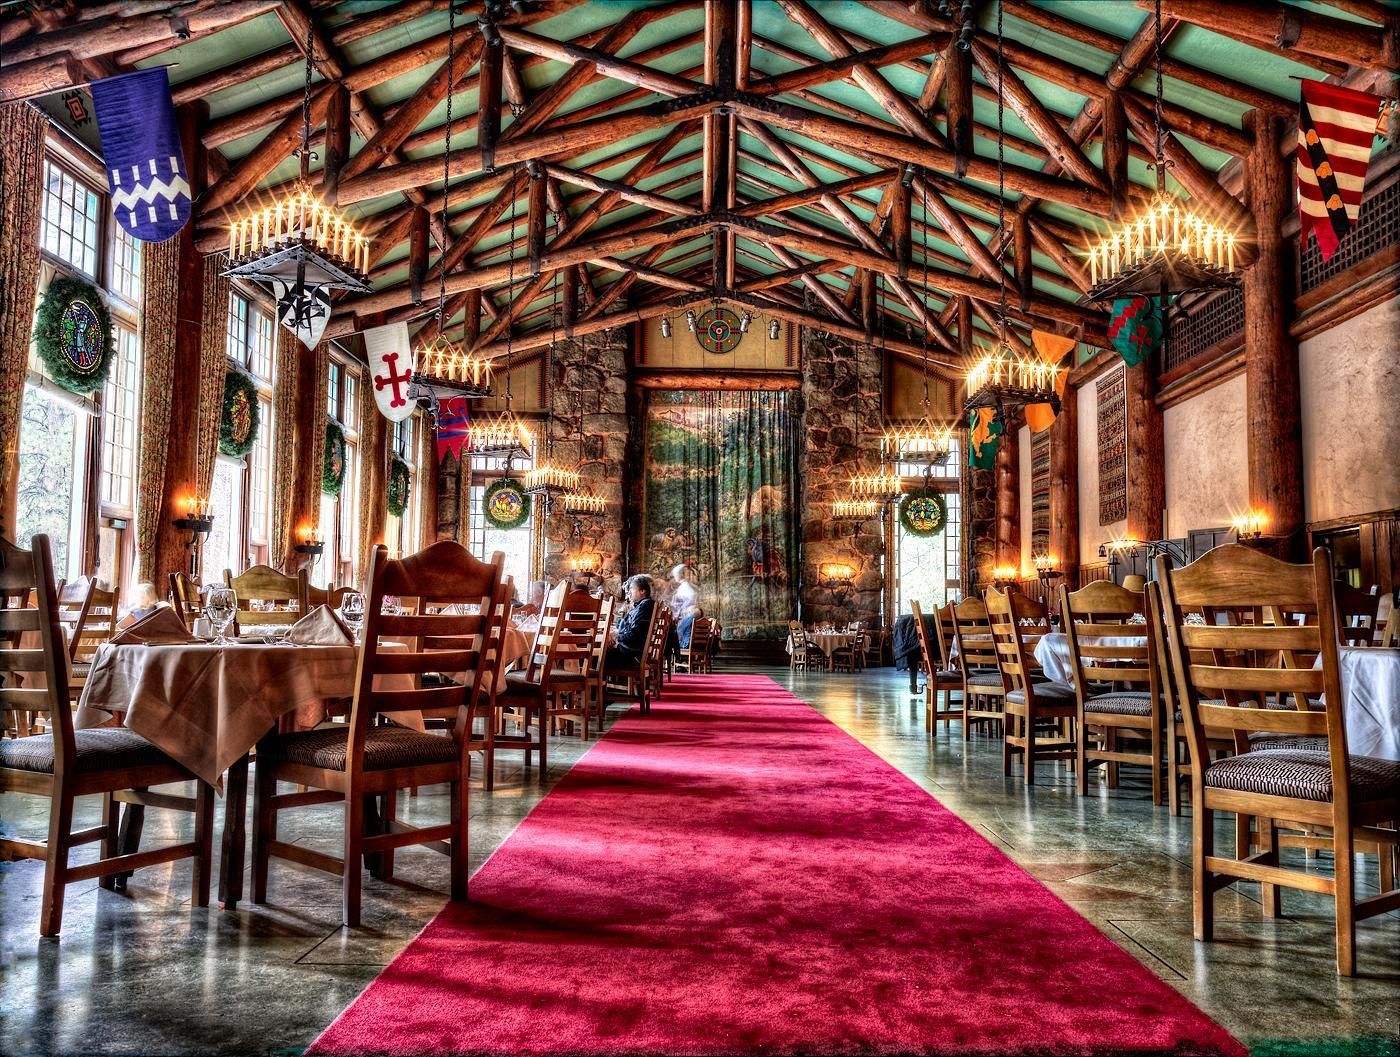 Ahwahnee Hotel Dining Room Gorgeous The Ahwahnee Hotel Dining Room With 16 Photos